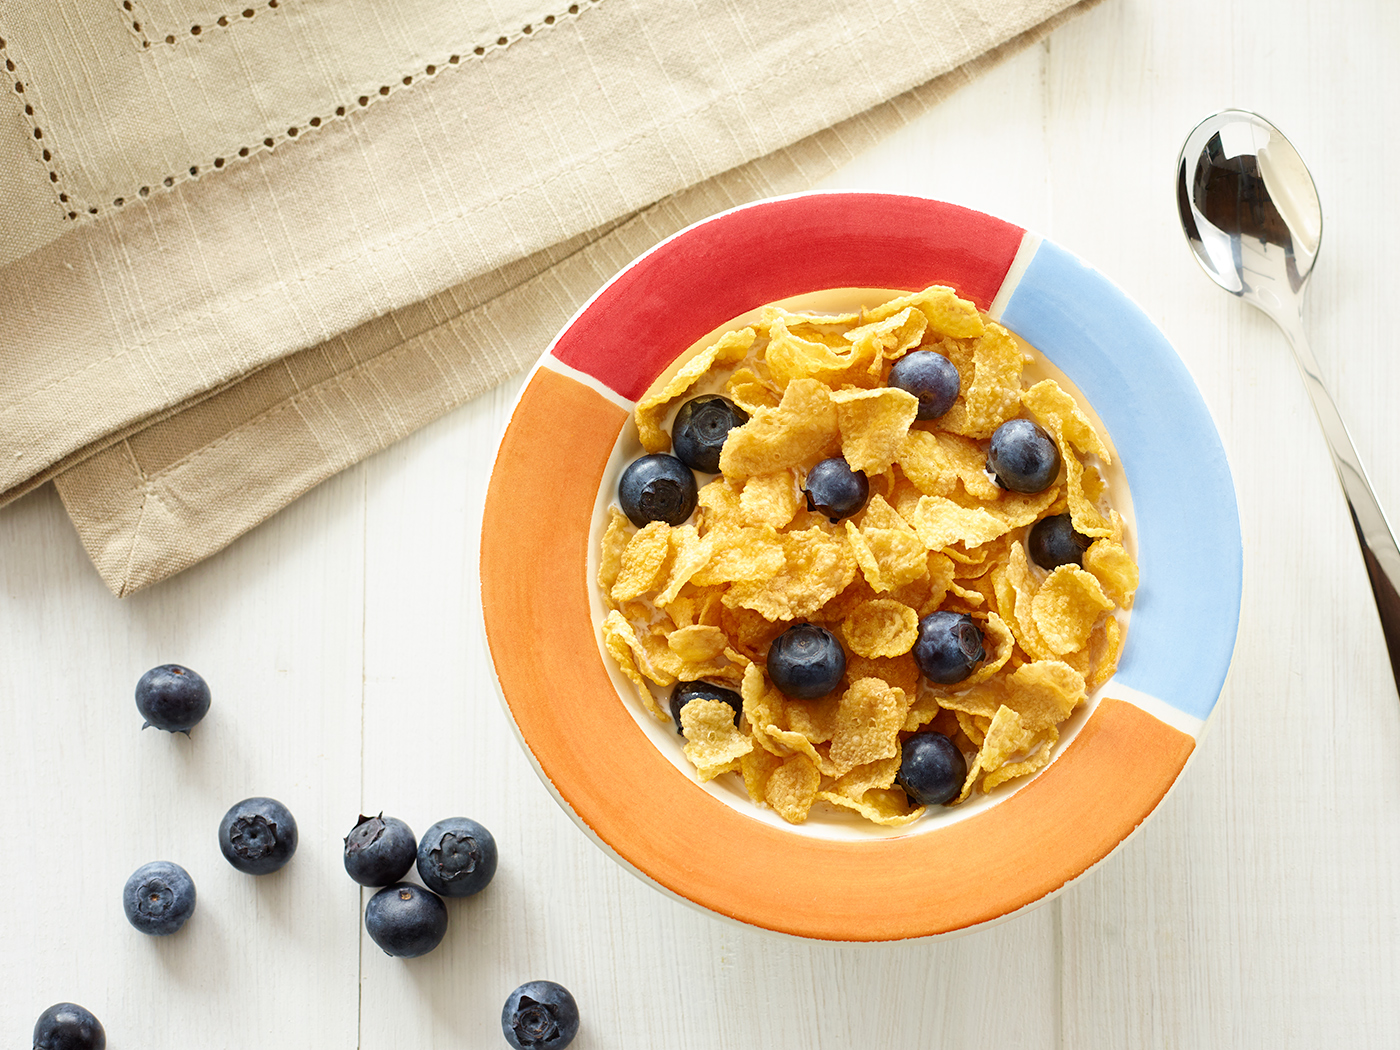 Kellogg's MyBowl with Corn Flakes and Blueberries